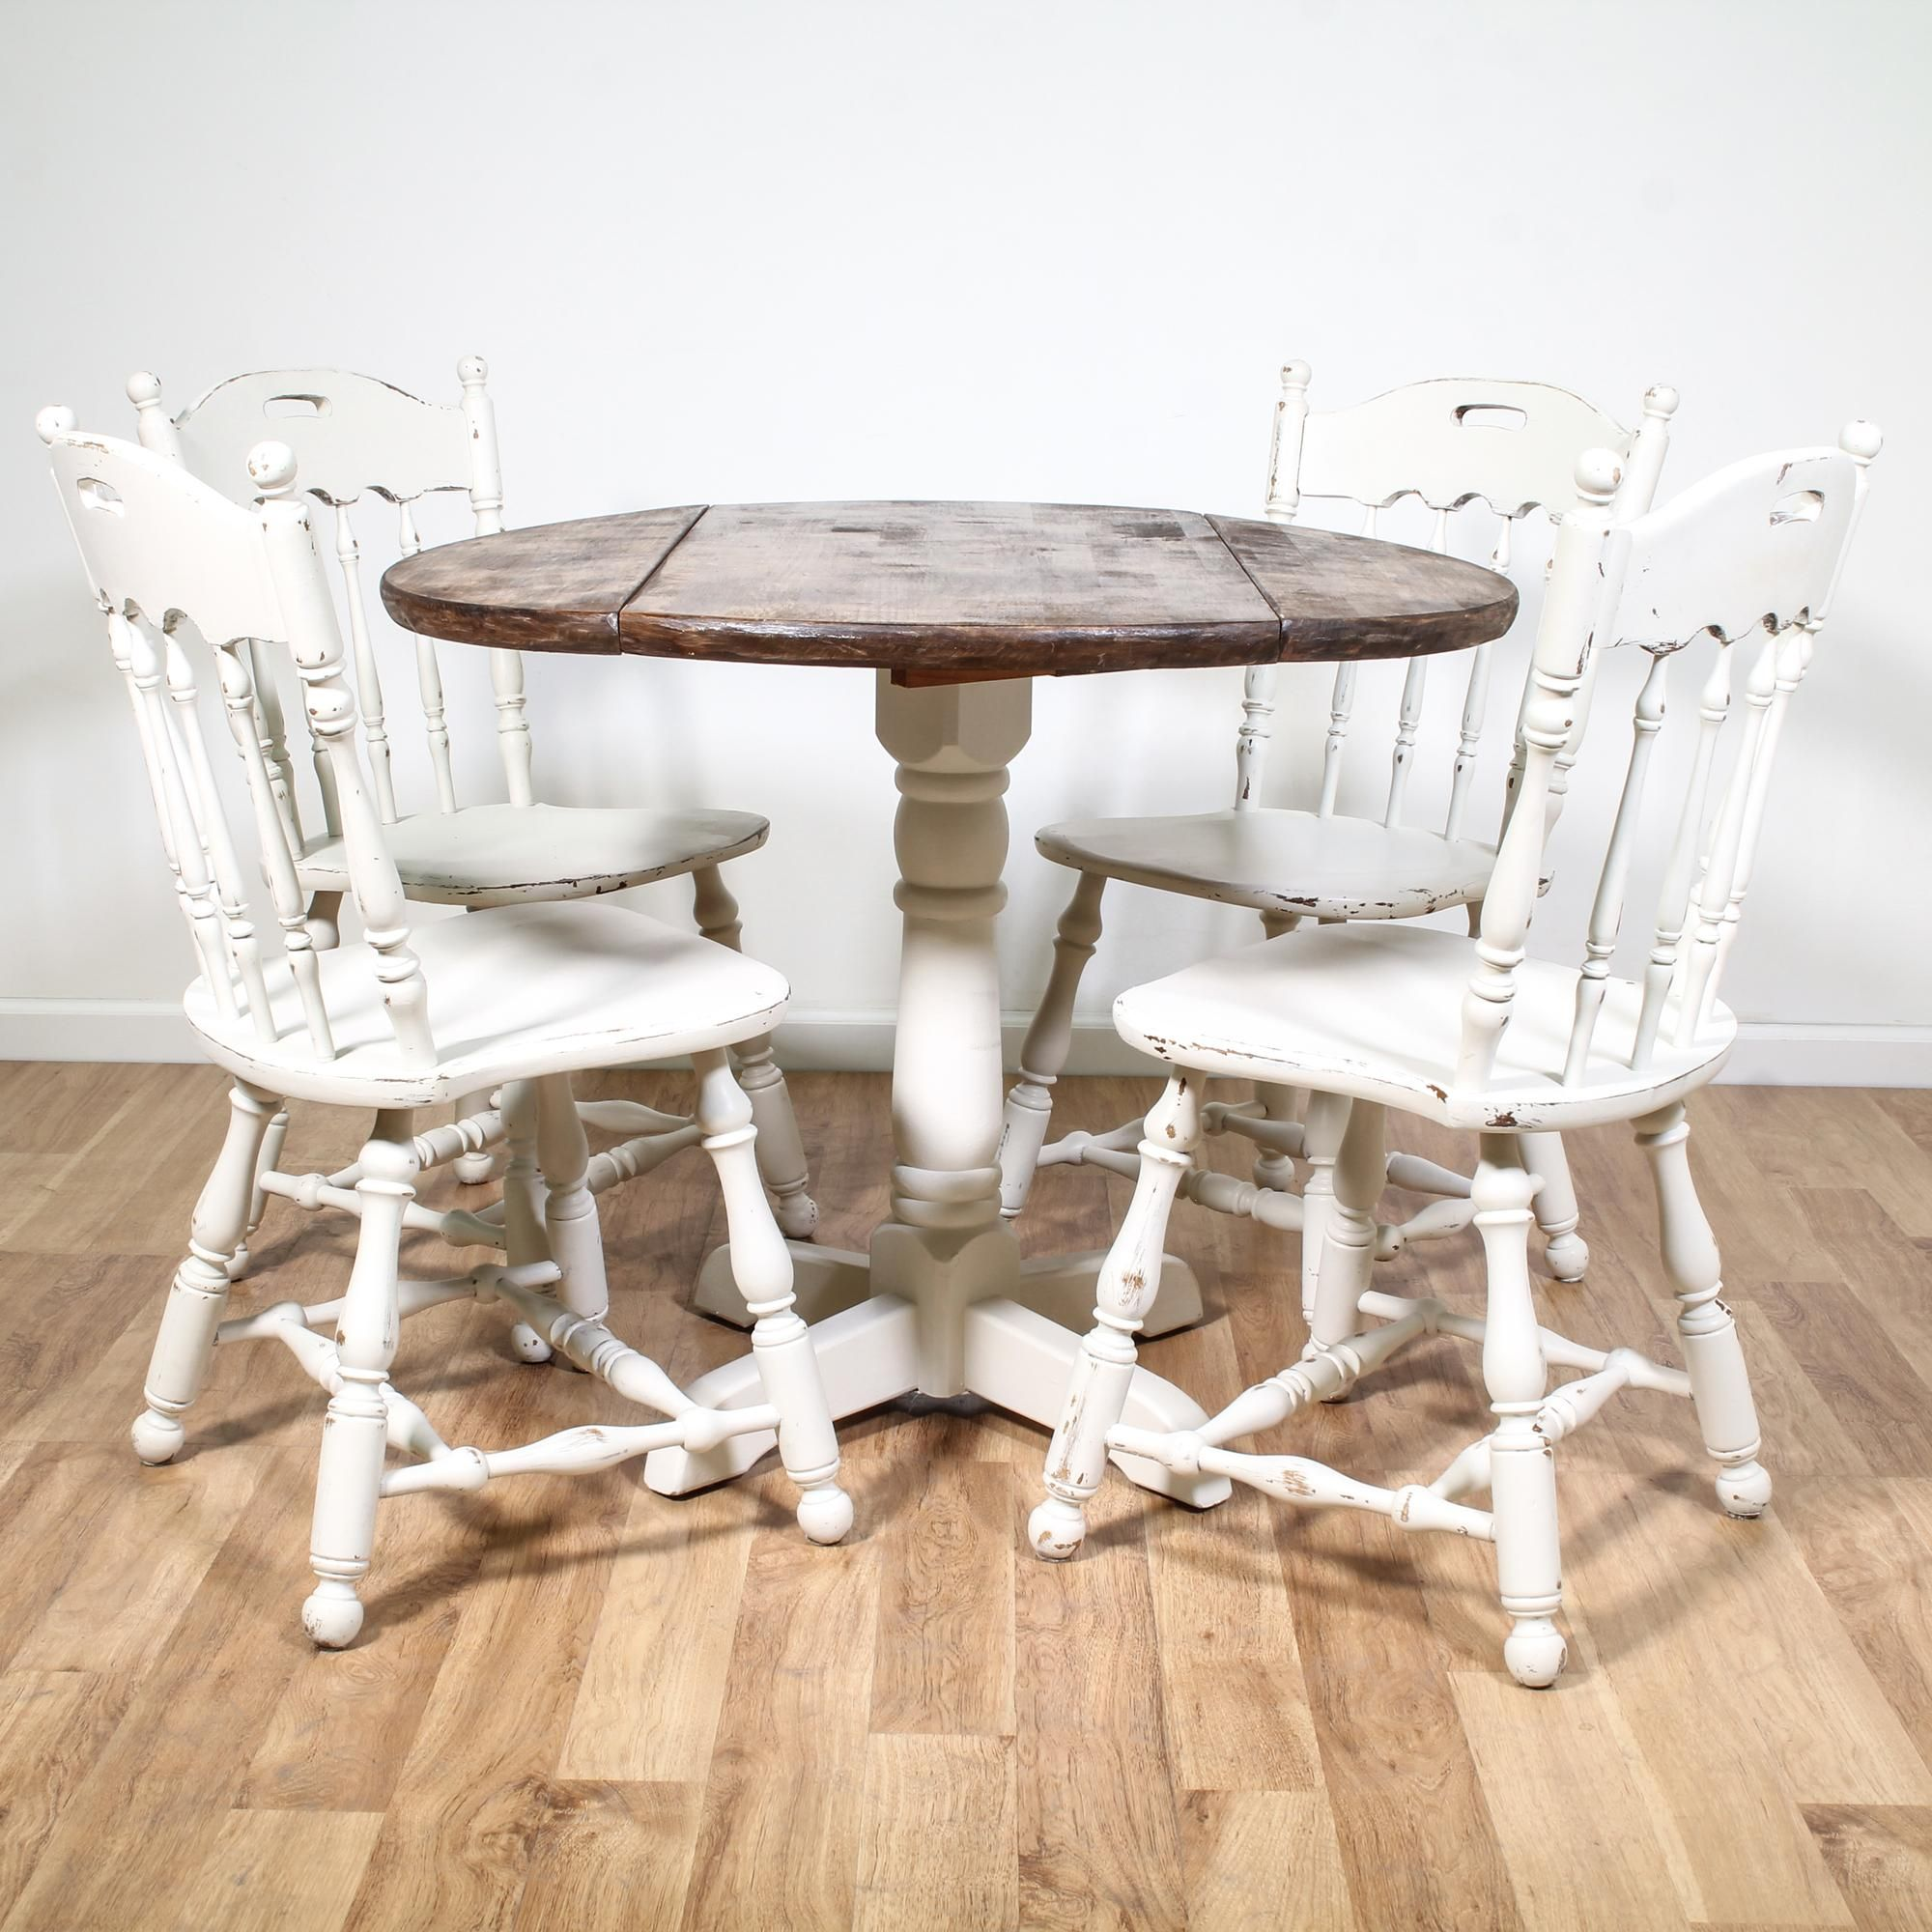 Cottage Chic Drop Leaf Dining Table W 4 Chairs Small Dining Room Table Shabby Chic Kitchen Drop Leaf Dining Table